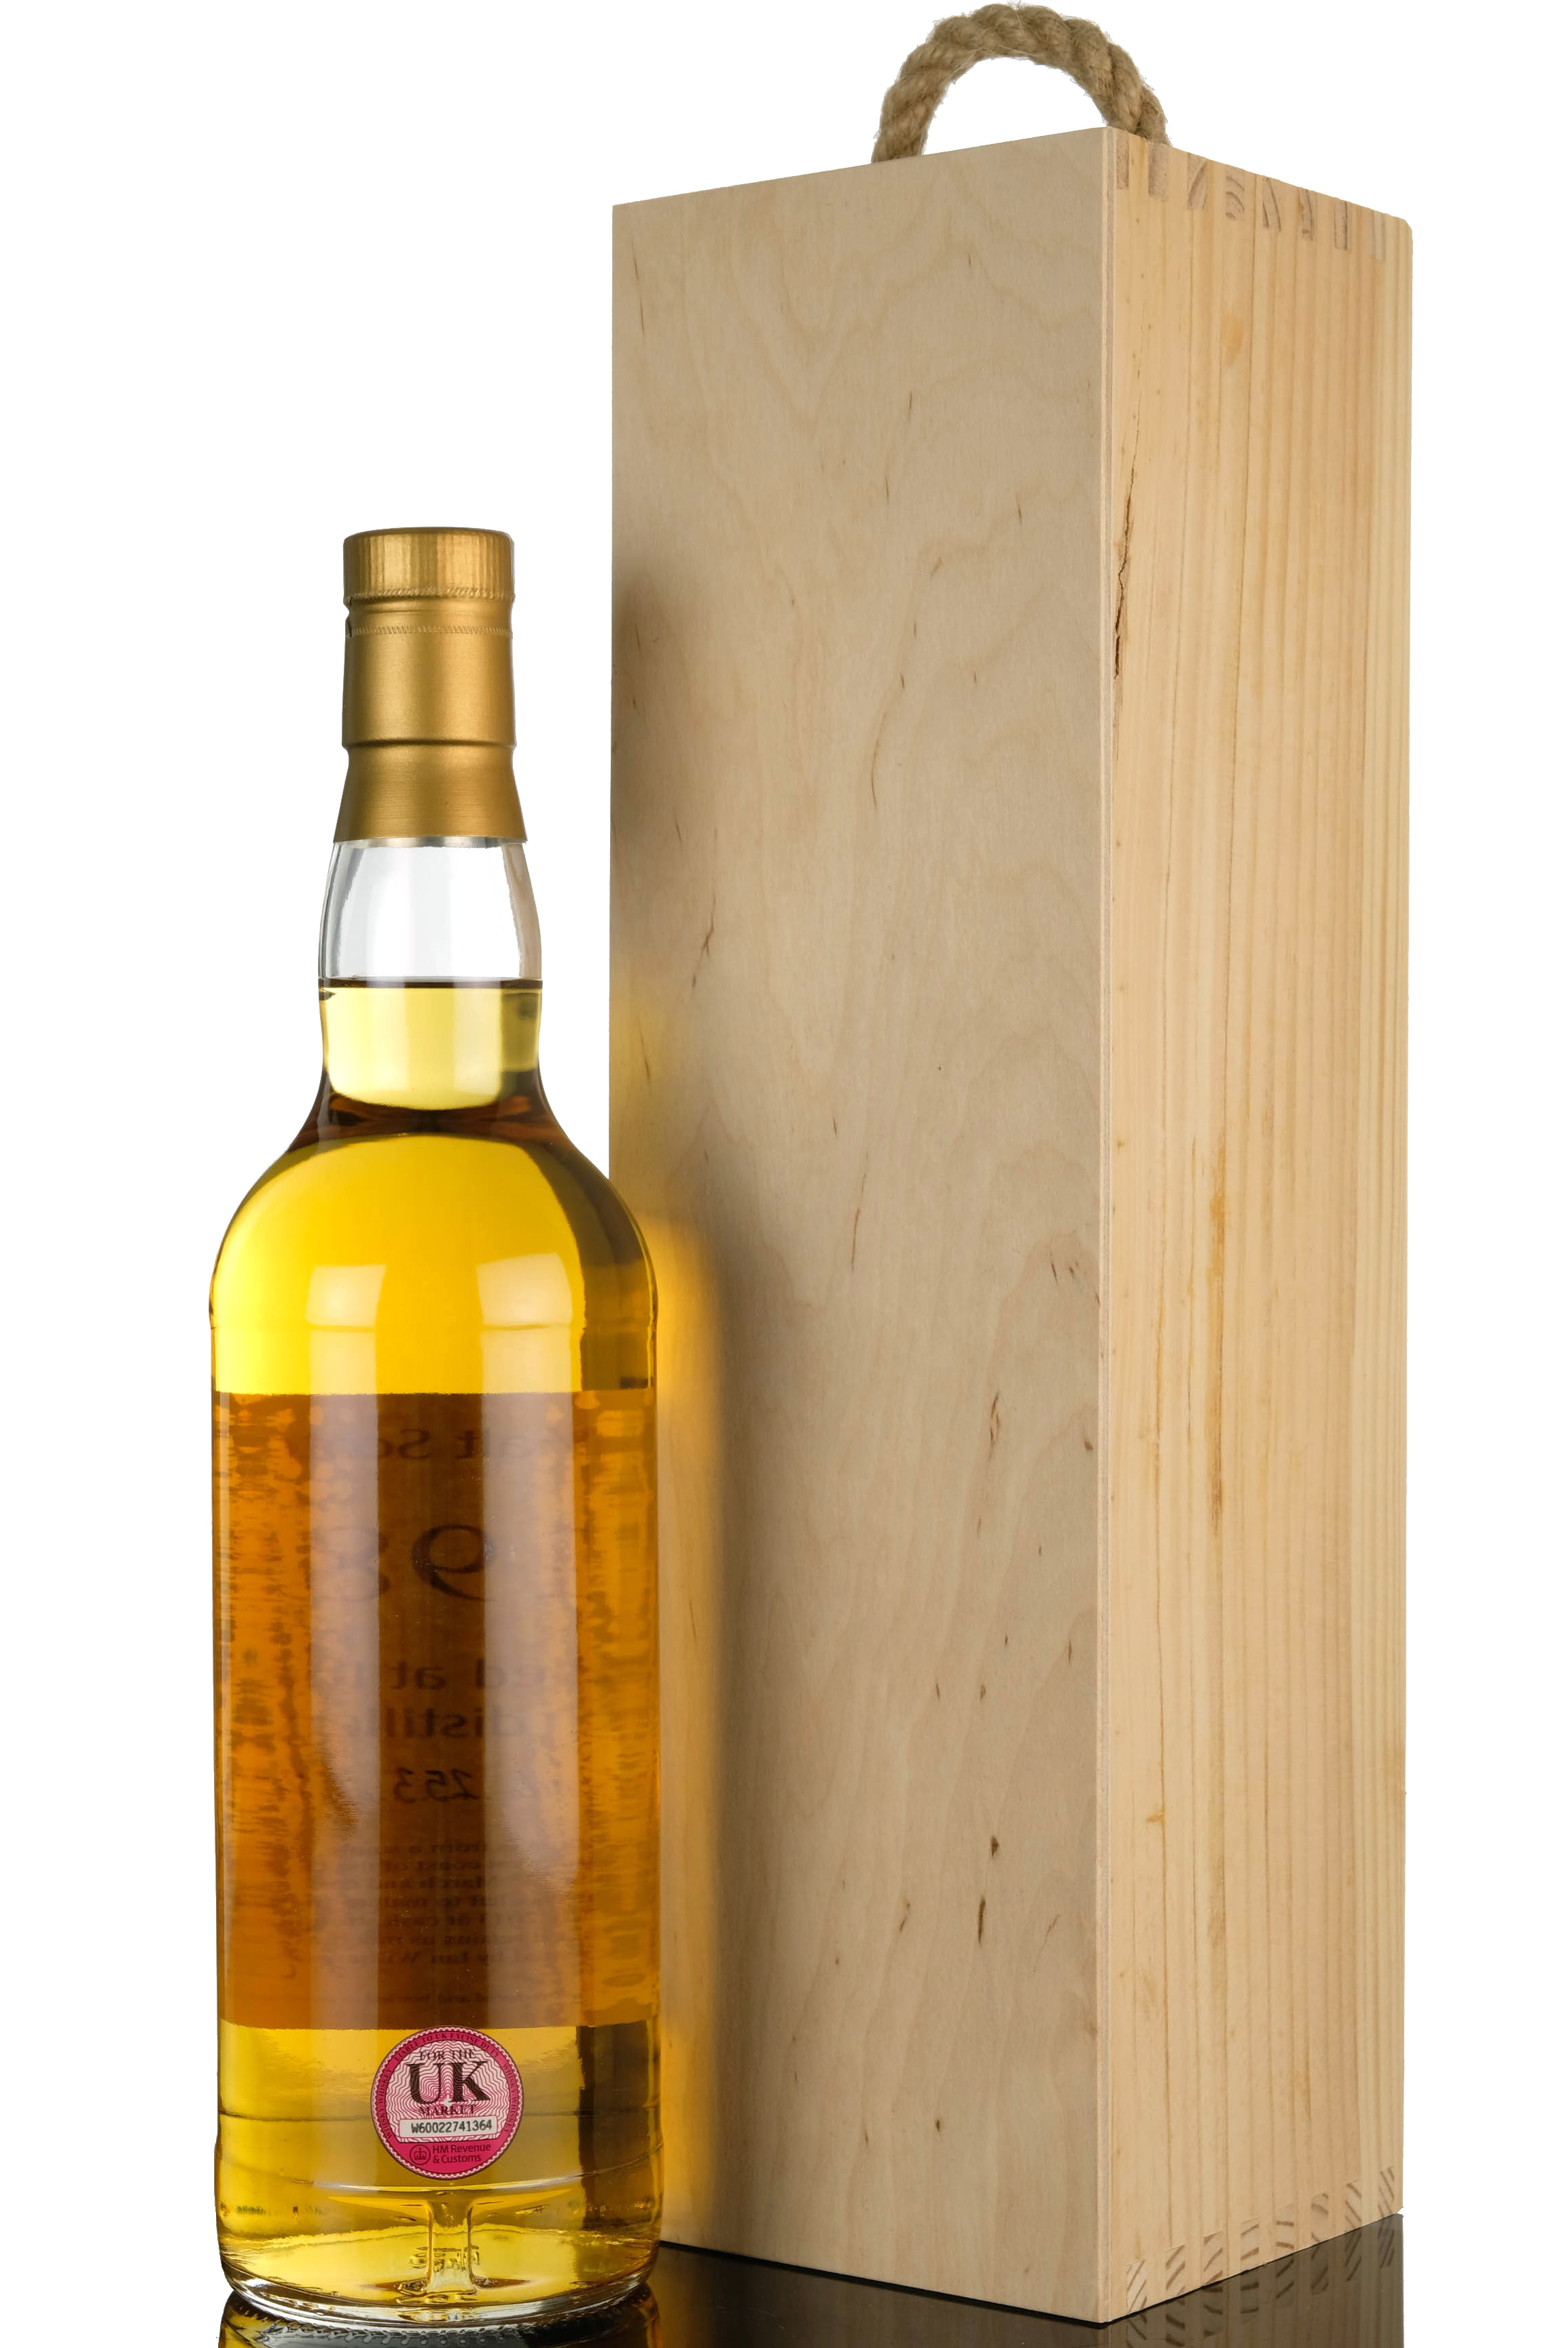 oban 1989-2013 - 24 year old - private single cask 748